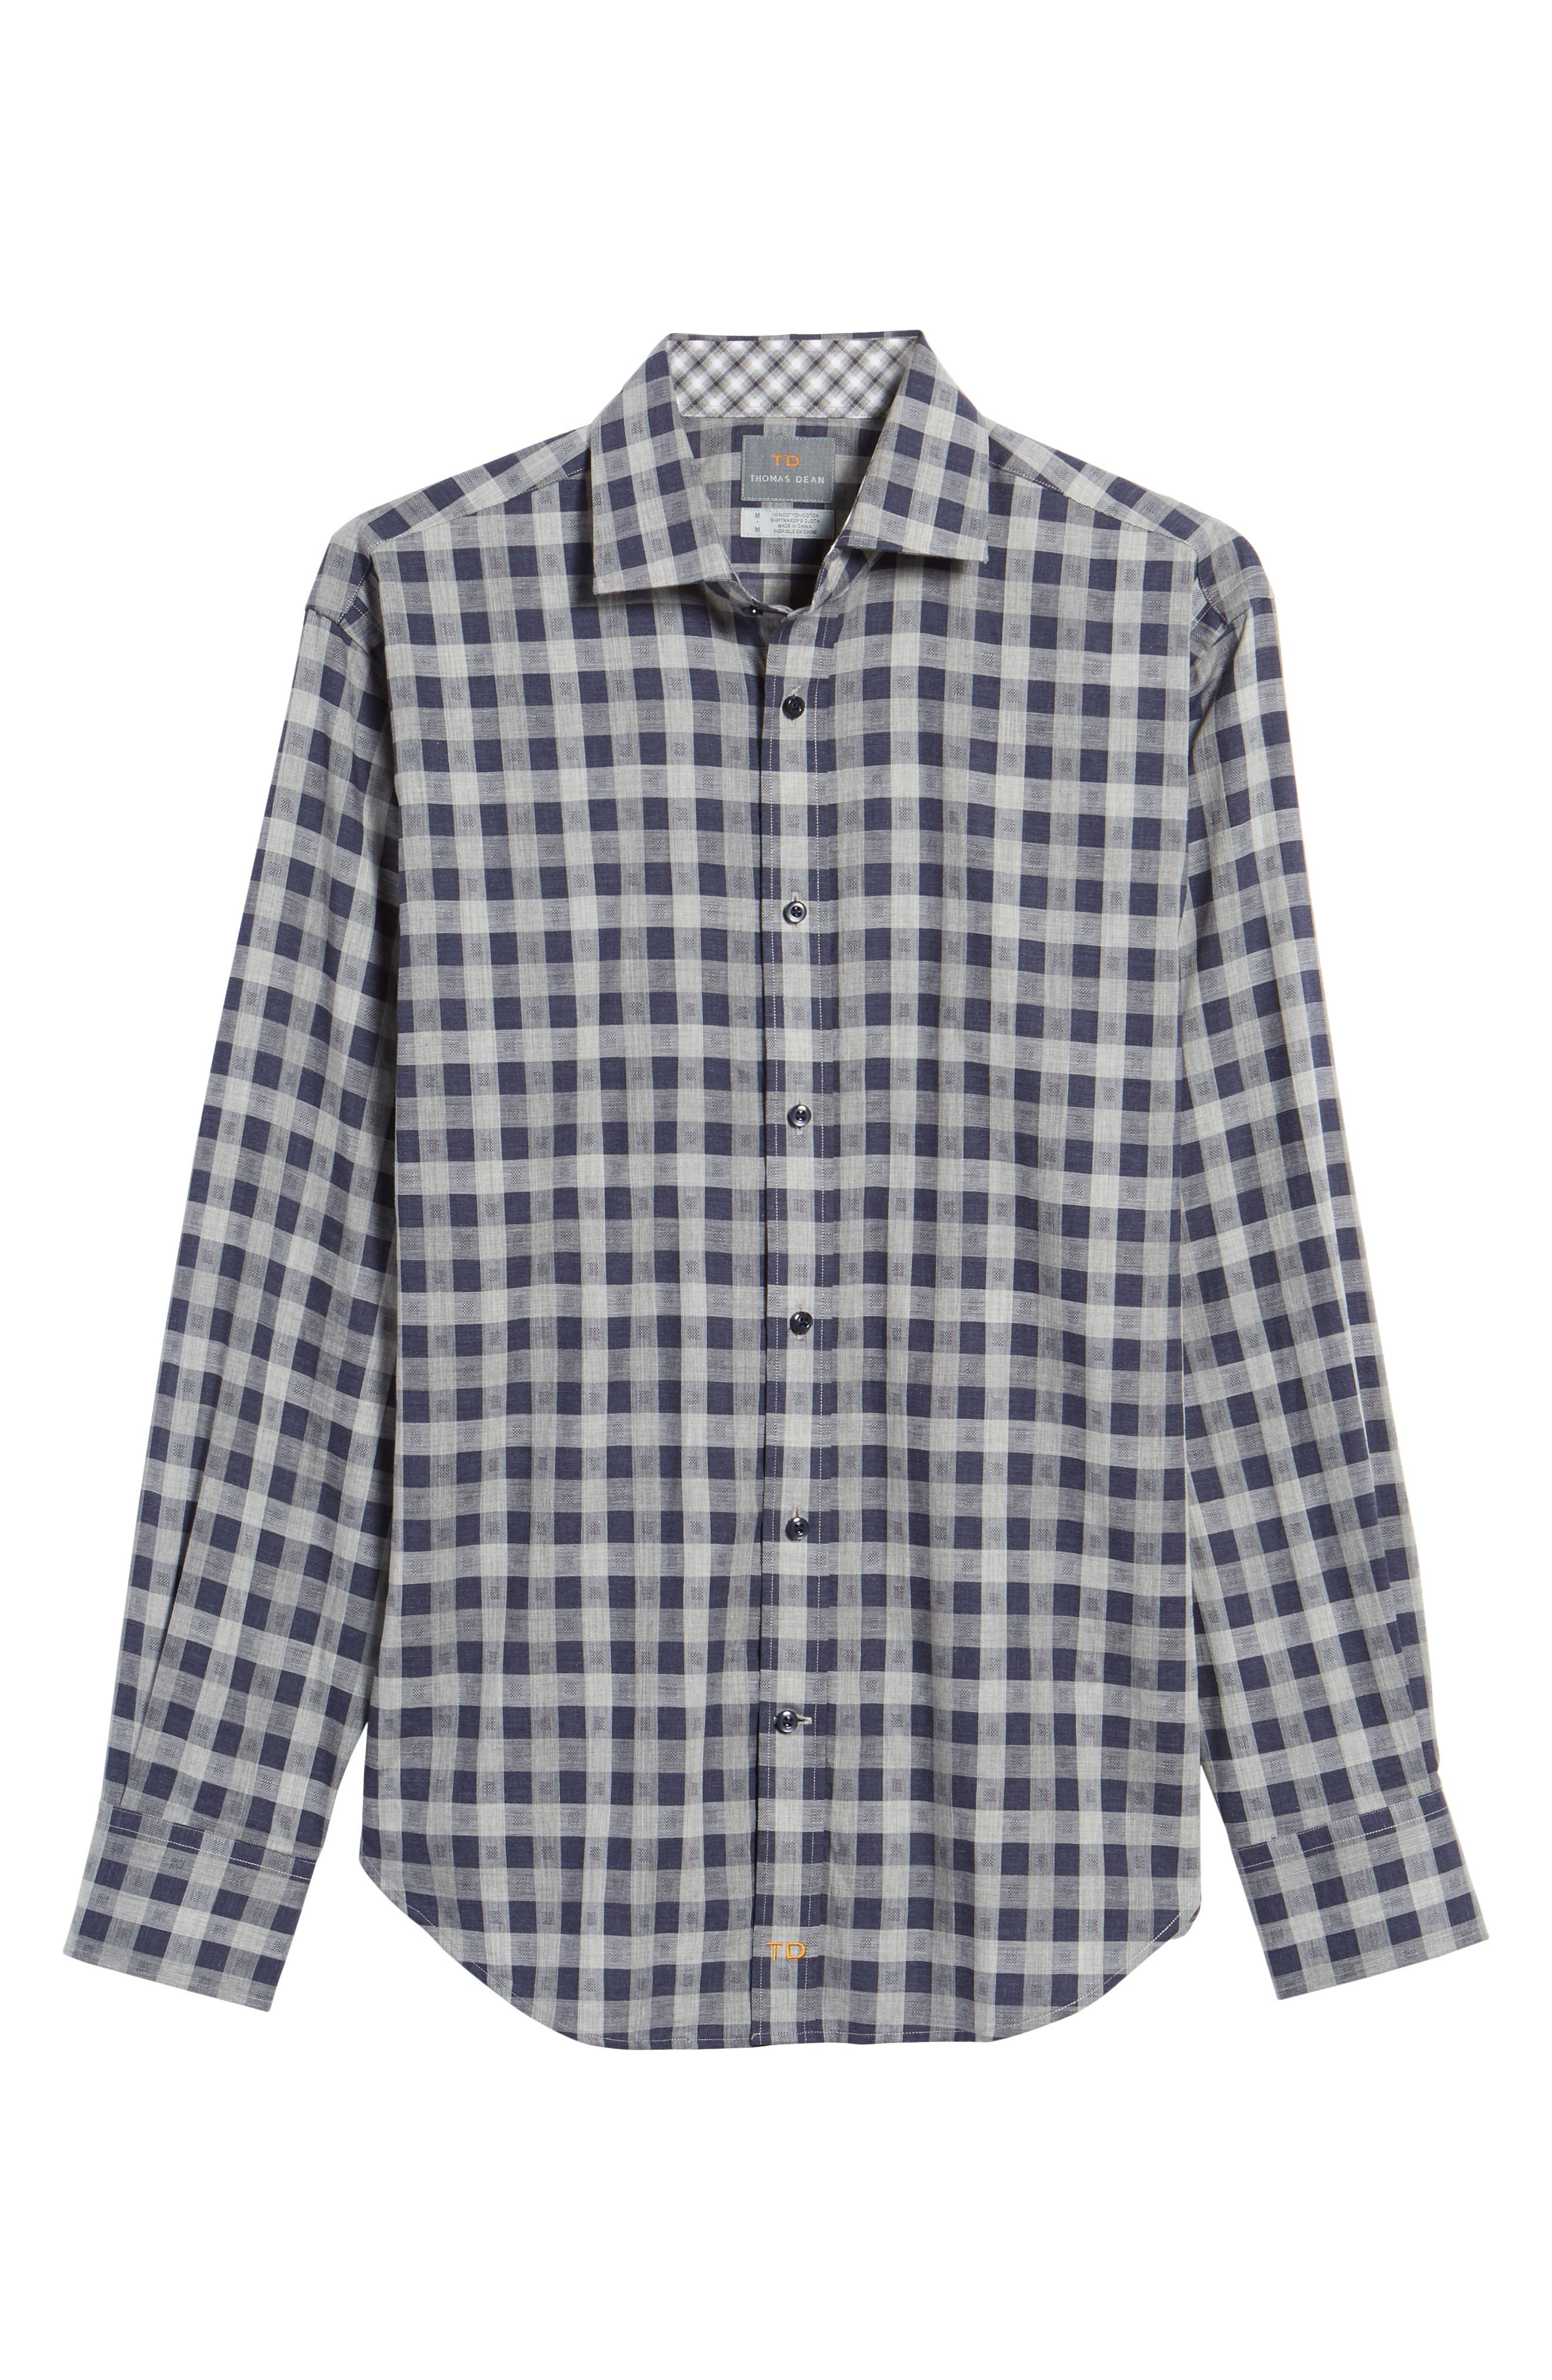 Regular Fit Check Sport Shirt,                             Alternate thumbnail 6, color,                             410